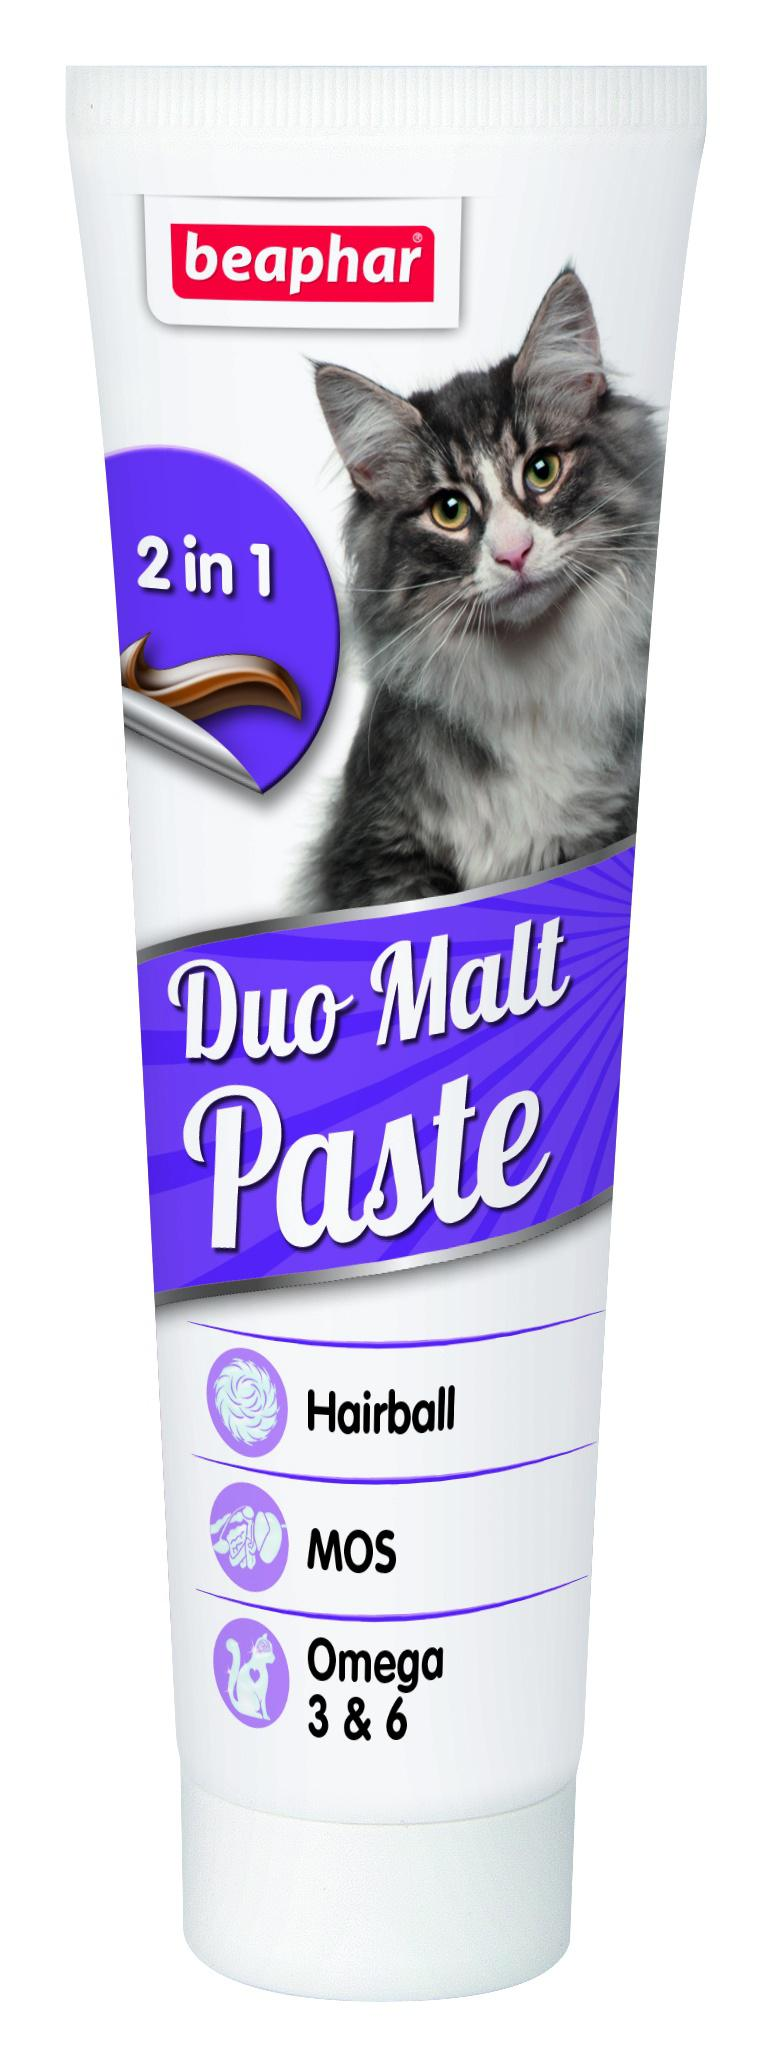 Beaphar  PASTE DUO MALT 100g